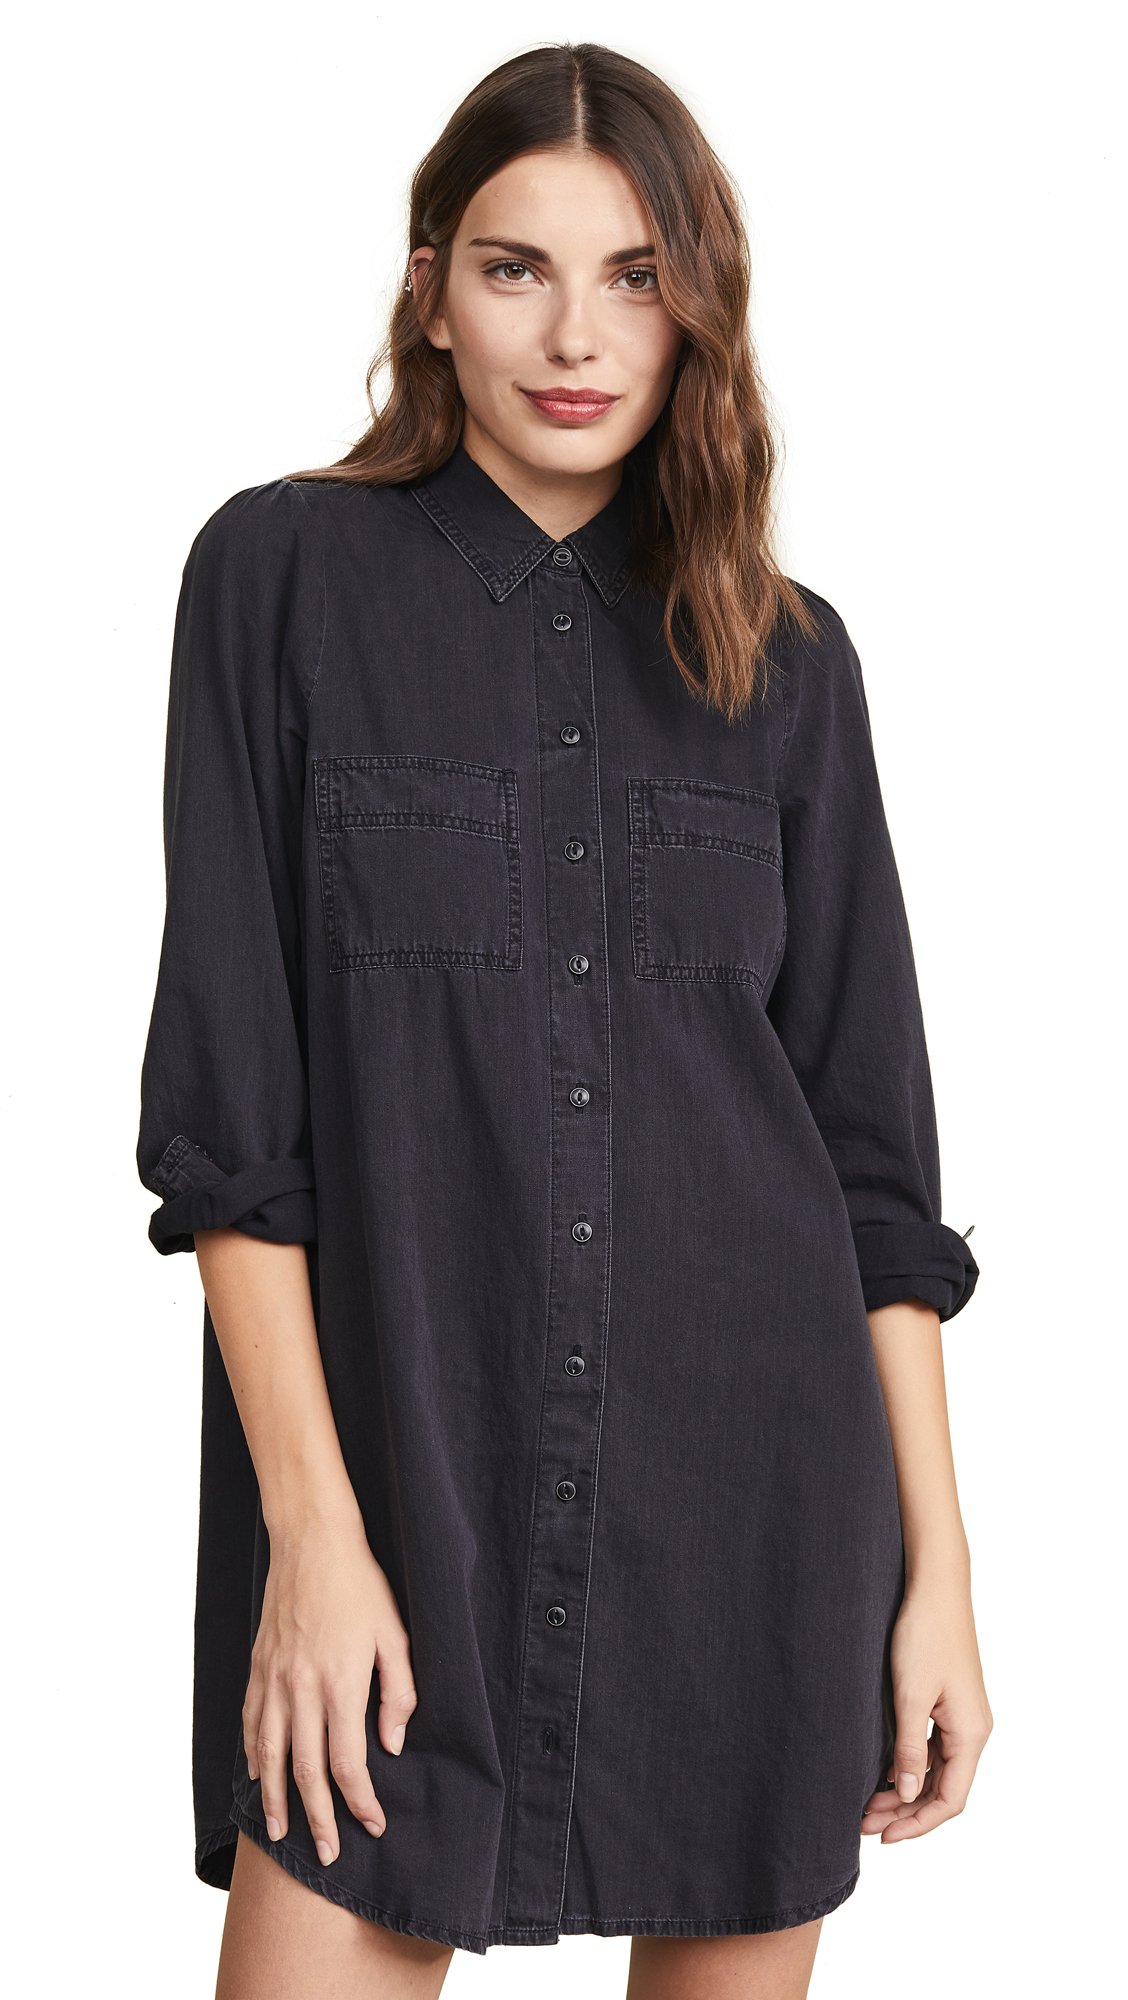 Madewell Denim Shirtdress - Kelsey Wash